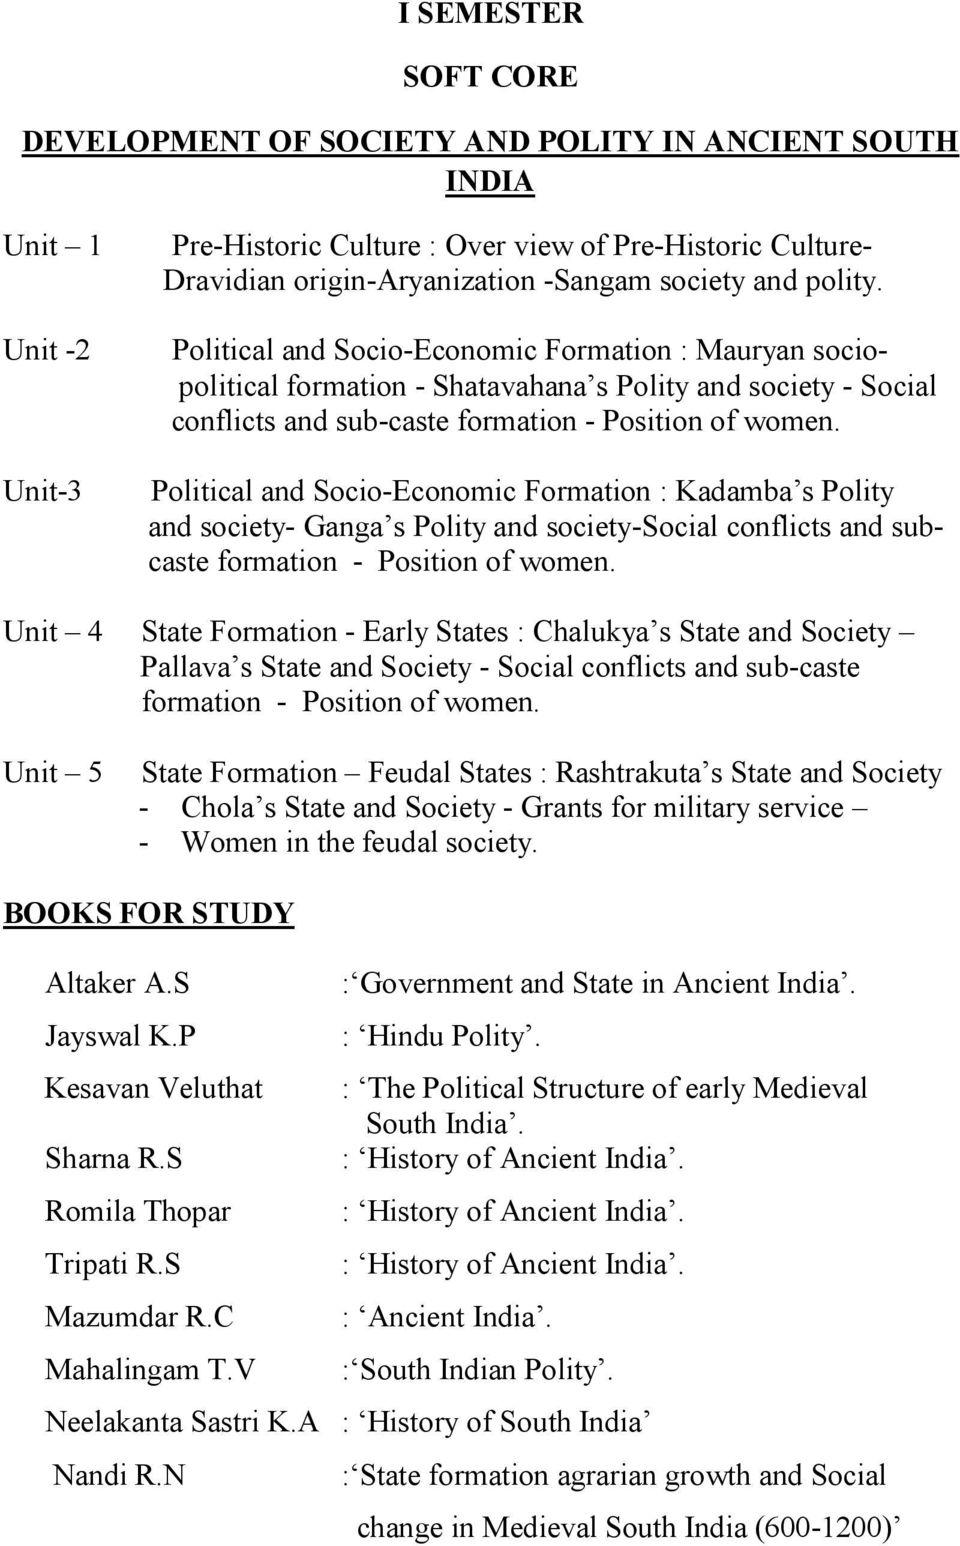 Political and Socio-Economic Formation : Kadamba s Polity and society- Ganga s Polity and society-social conflicts and subcaste formation - Position of women.